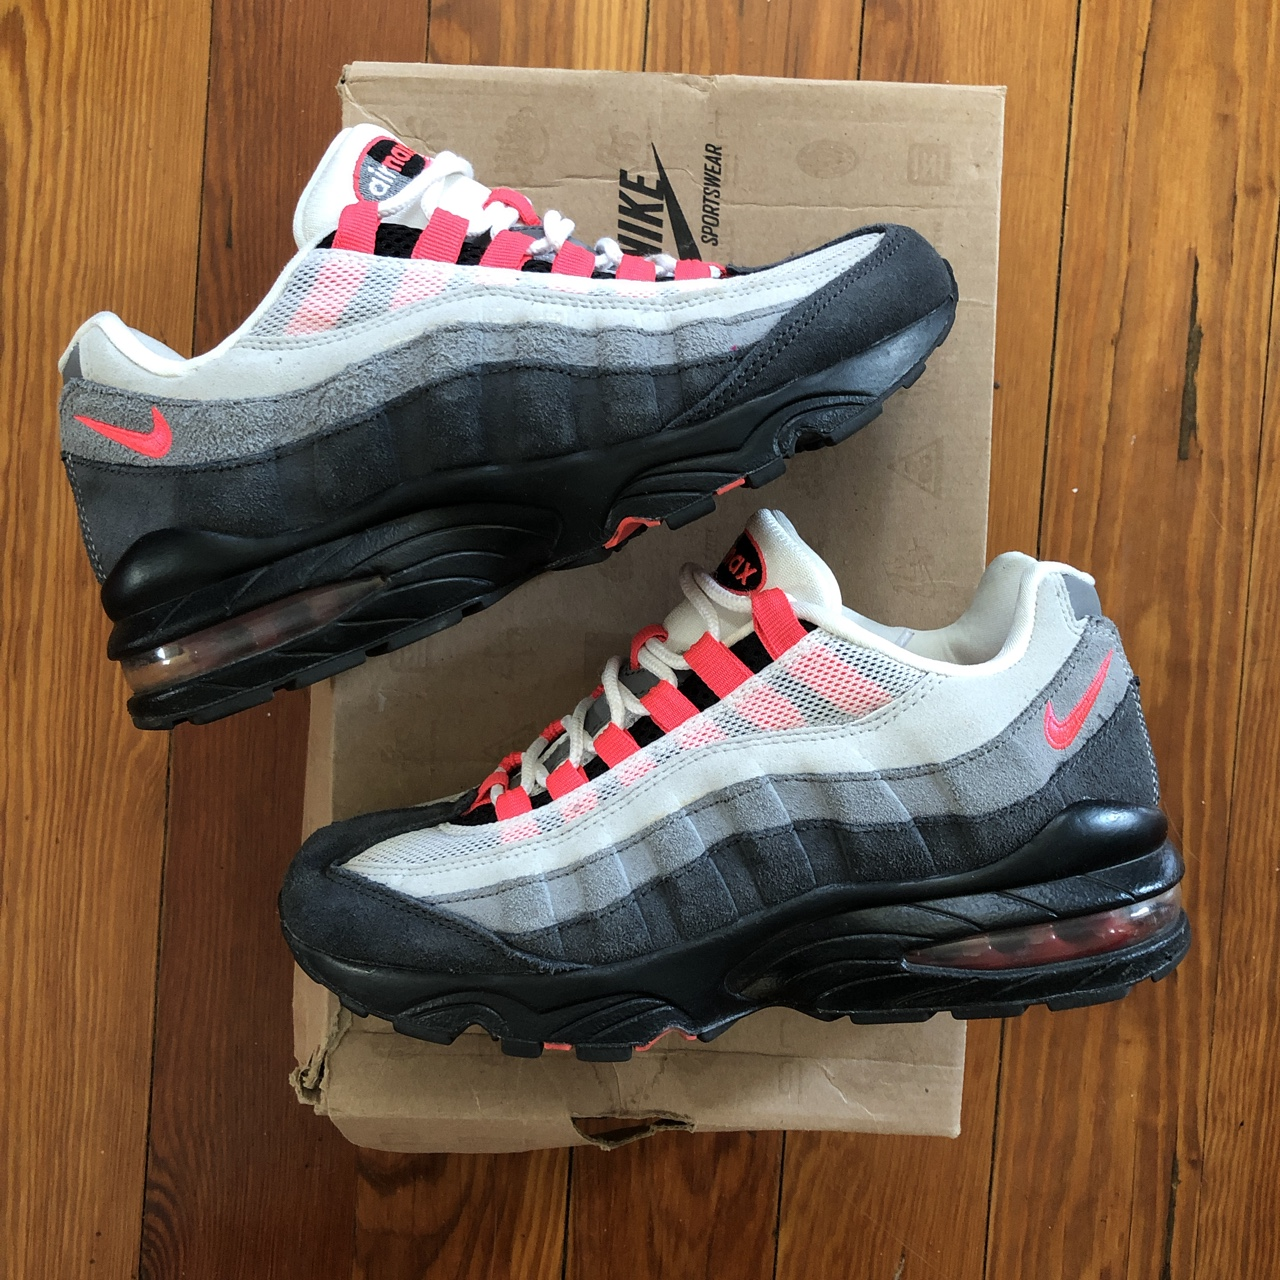 2012 Nike Air Max 95 , Gradeschool size 5.5Y which is...